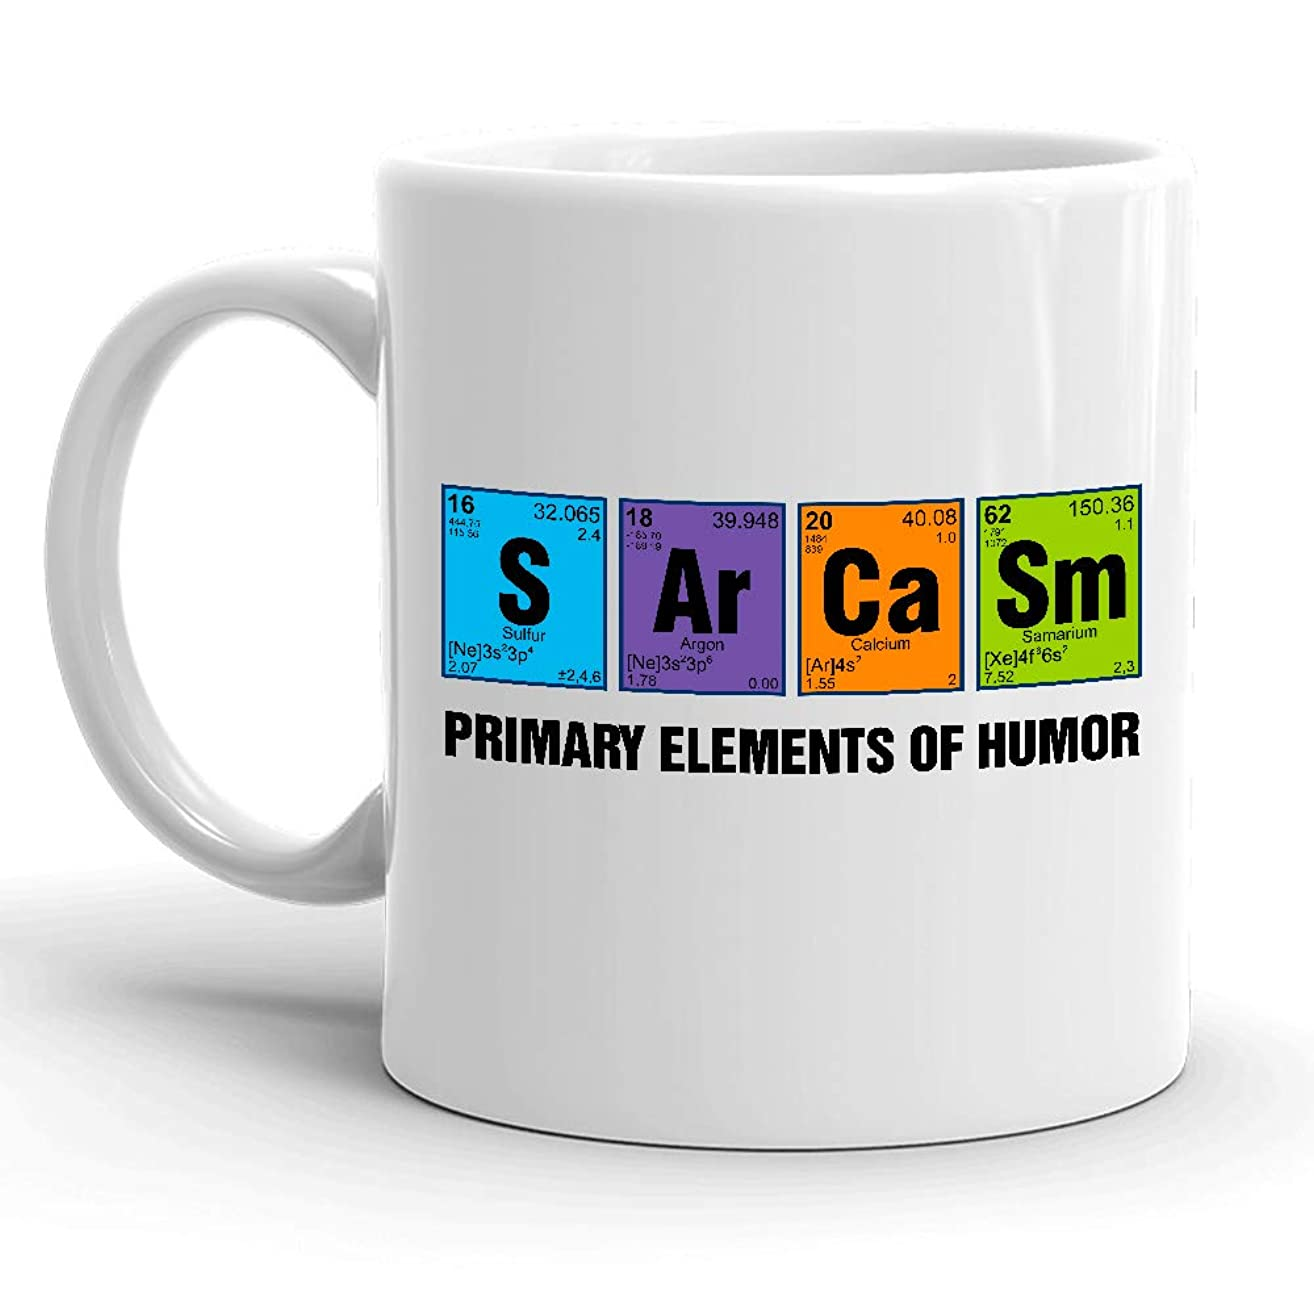 Science Coffee Mug Sarcasm Primary Elements of Humor - Perfect gift for Science Lover, Chemistry Students, Chemistry Teacher - White Ceramic 11 oz Coffee Mug - Hot Rude Sarcastic Mugs Memes Tea Cup